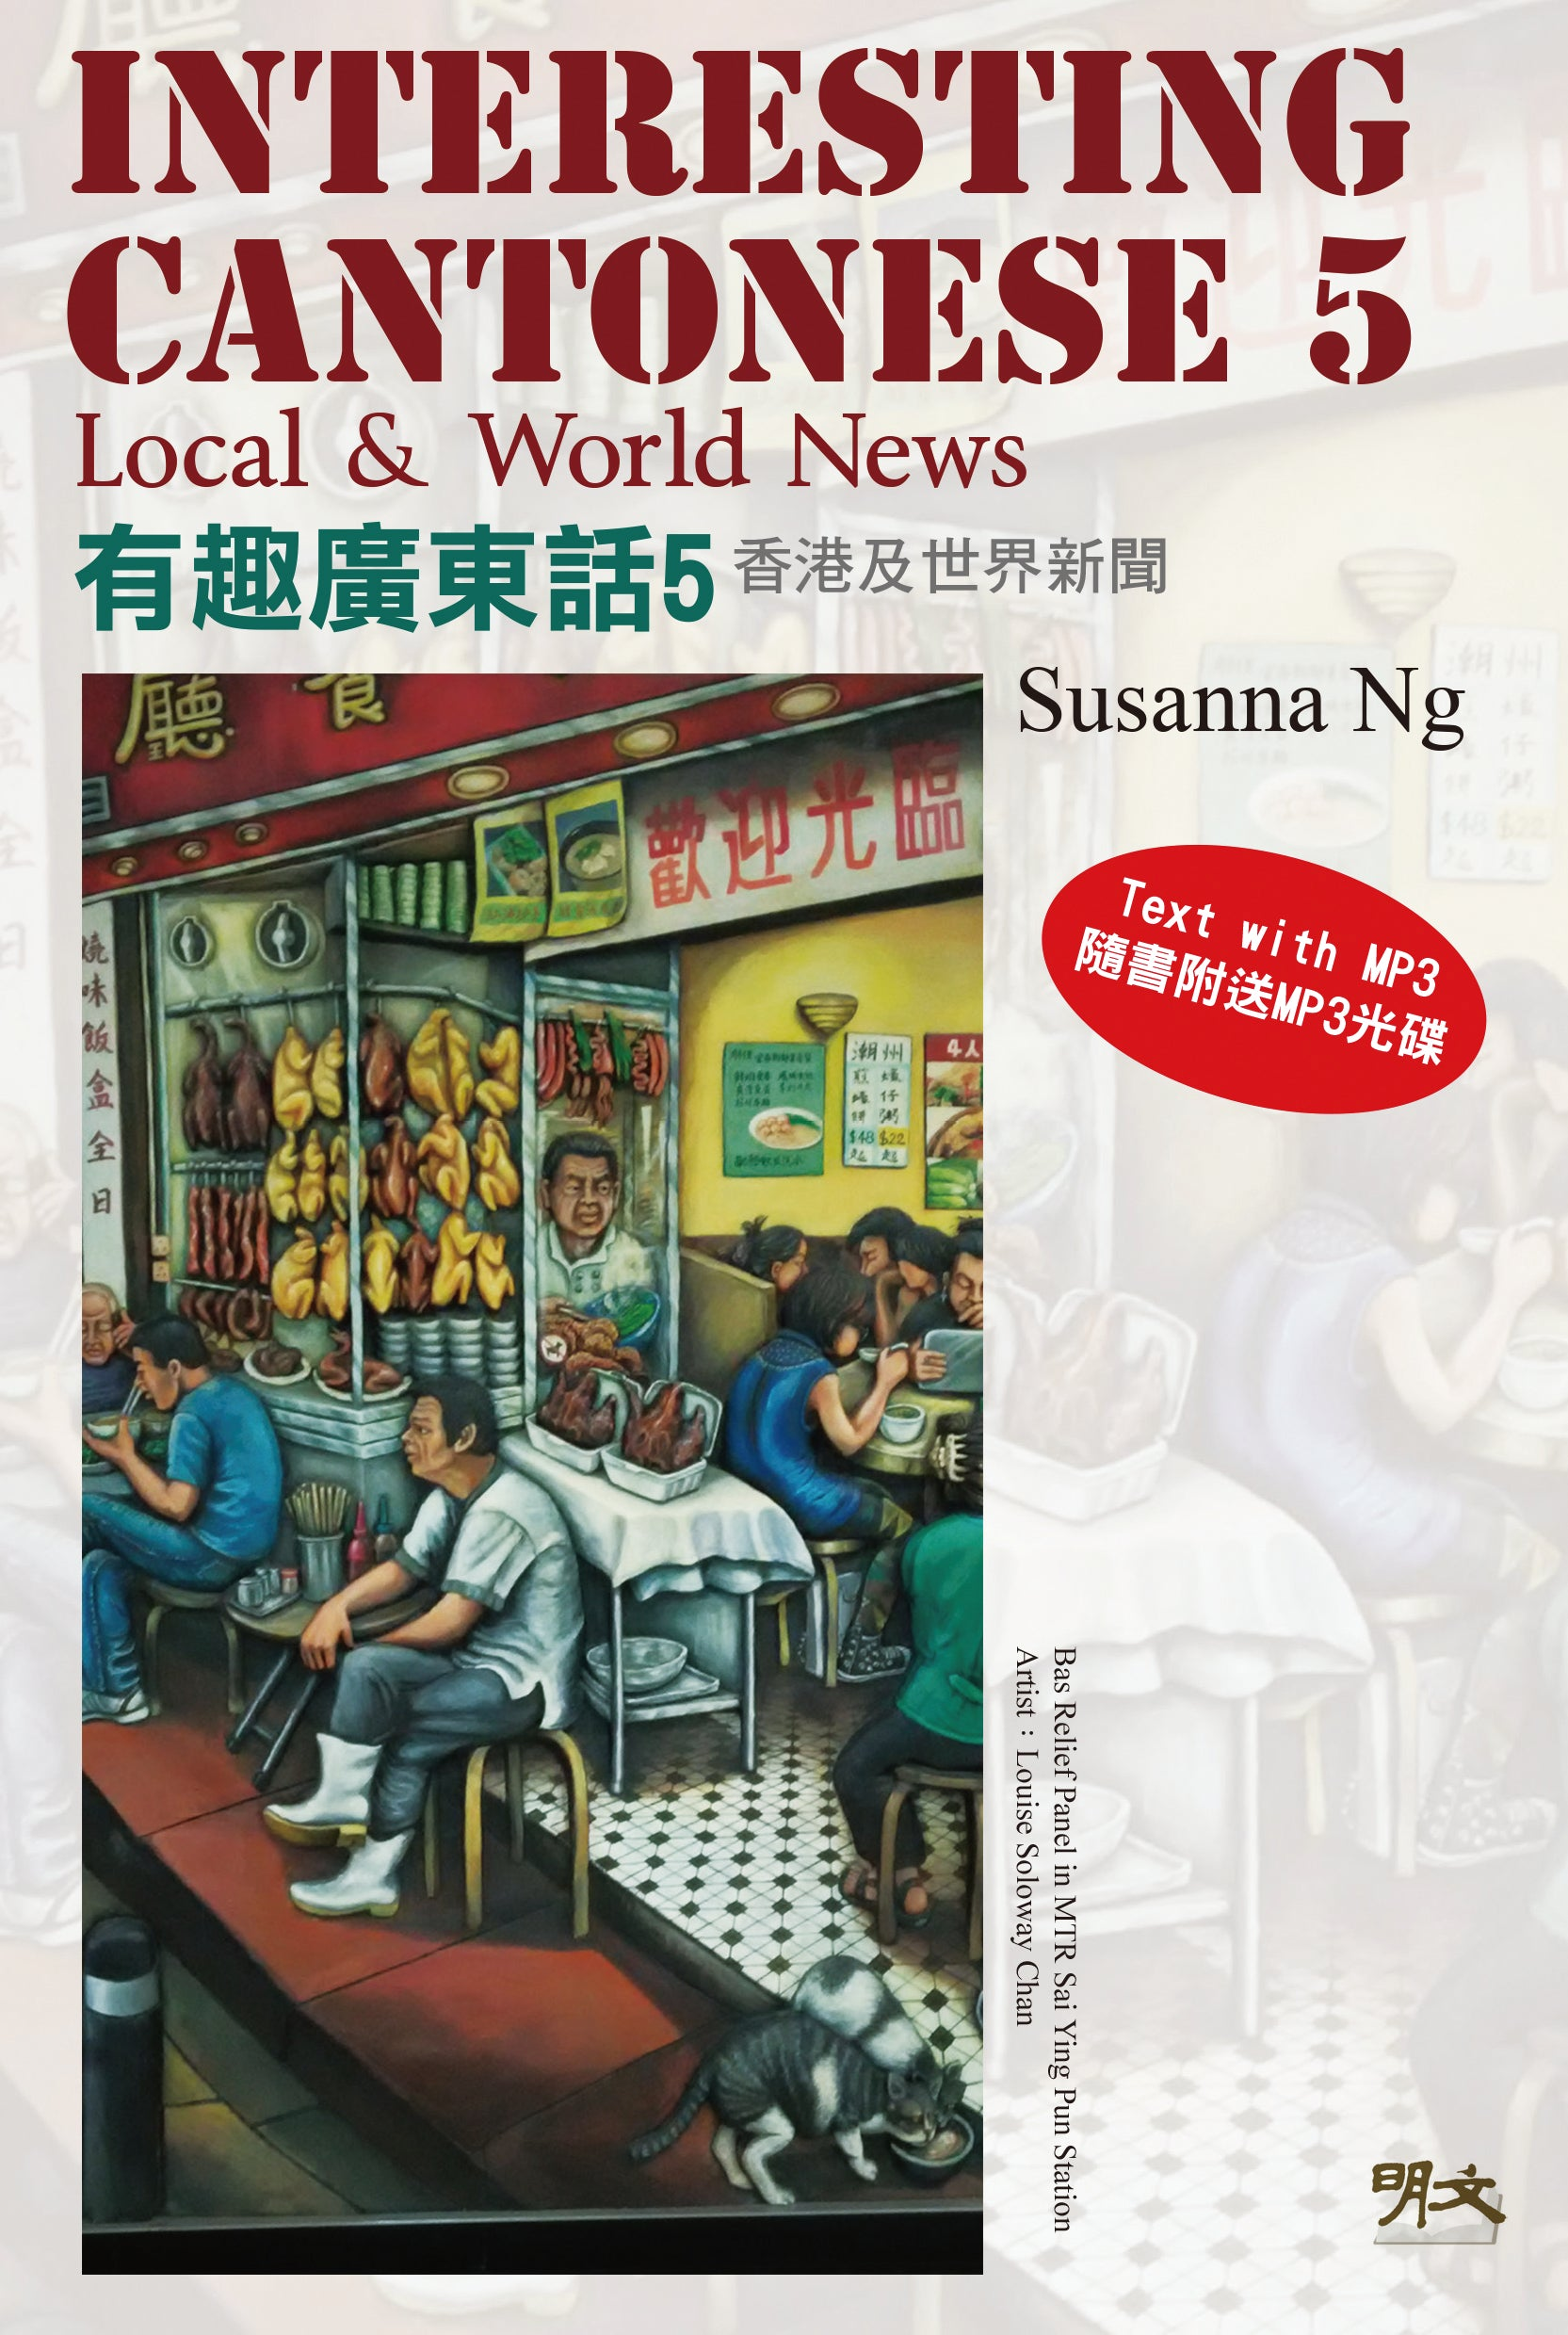 Interesting Cantonese 5: Local & World News